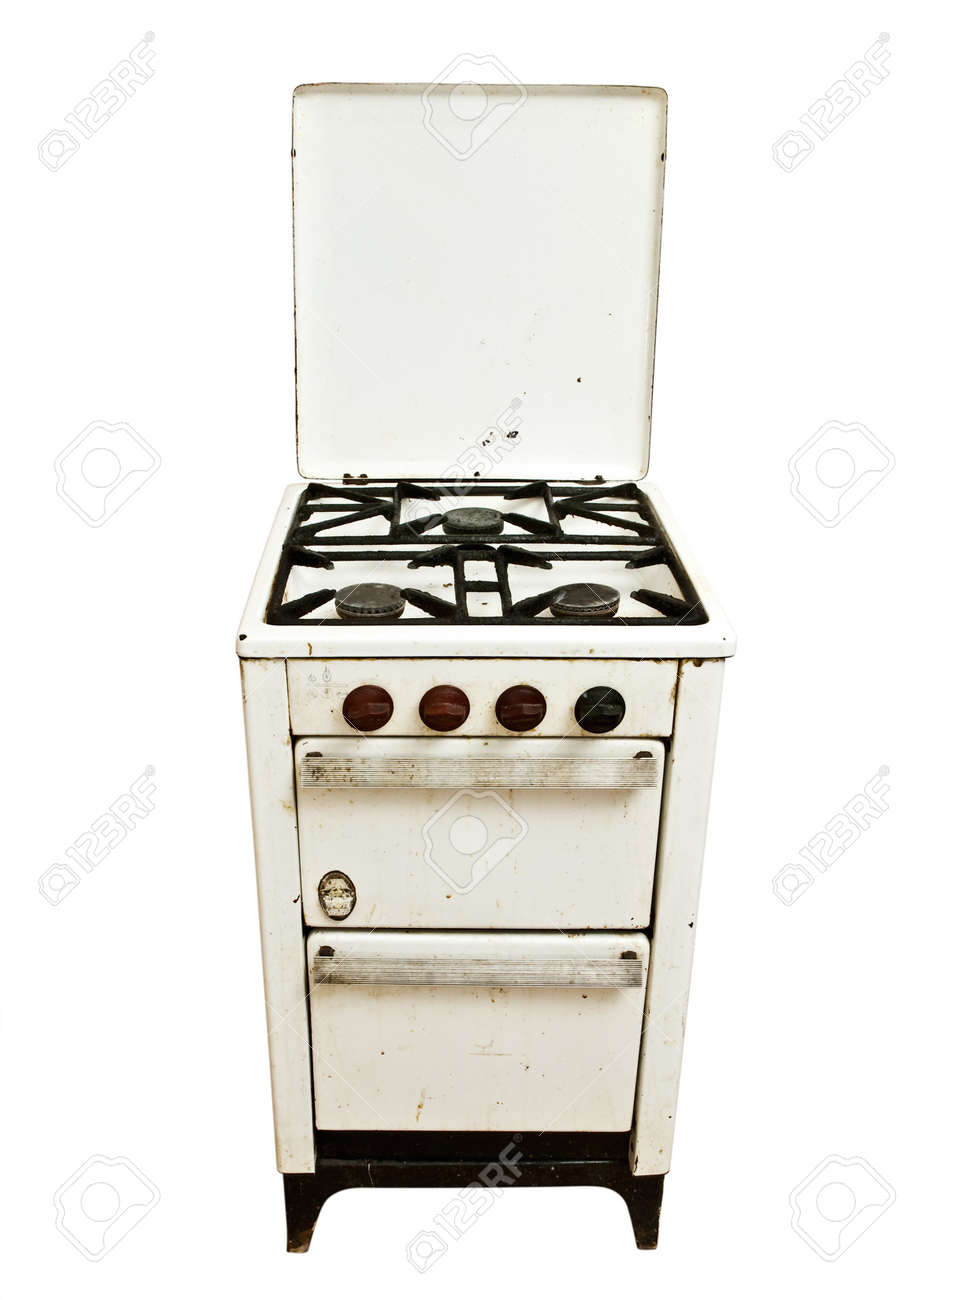 Old Vintage Gas Stove Over White Background Stock Photo, Picture ...